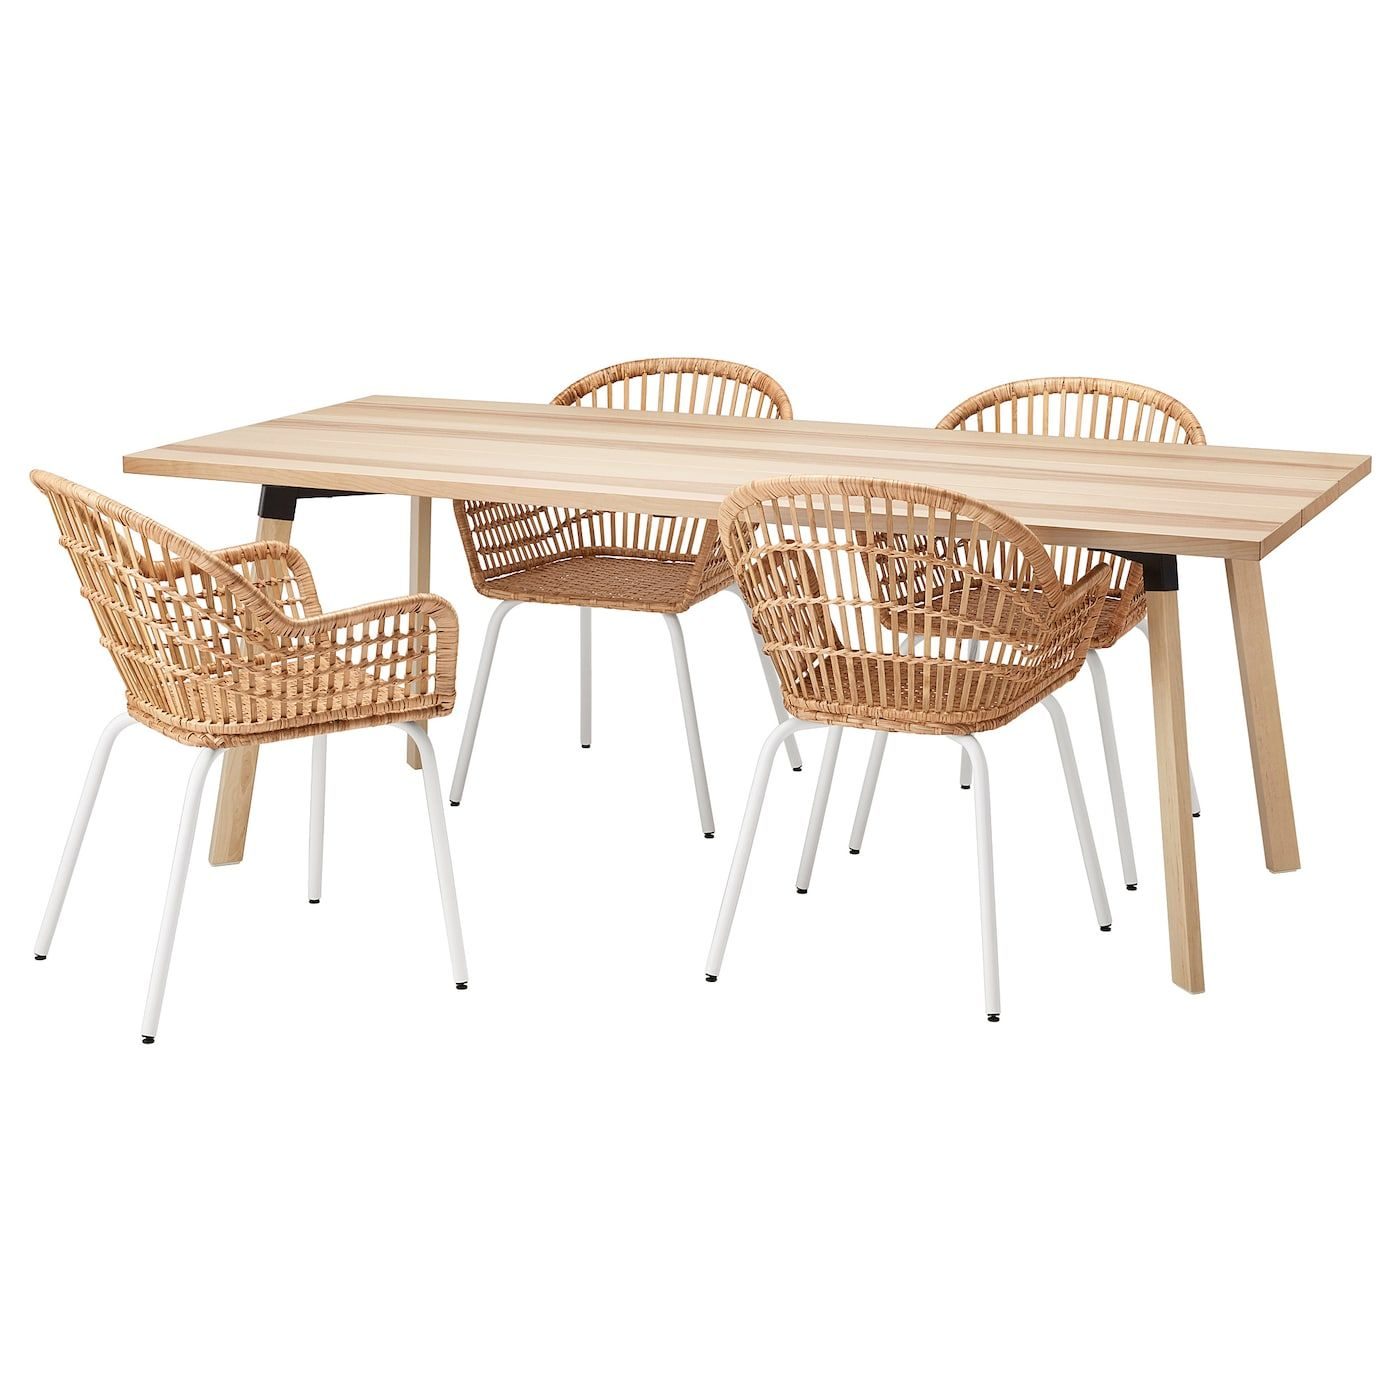 Ypperlig Nilsove Table And 4 Chairs Ash Rattan White Ikea 4 Chaises Et Table Et Chaises